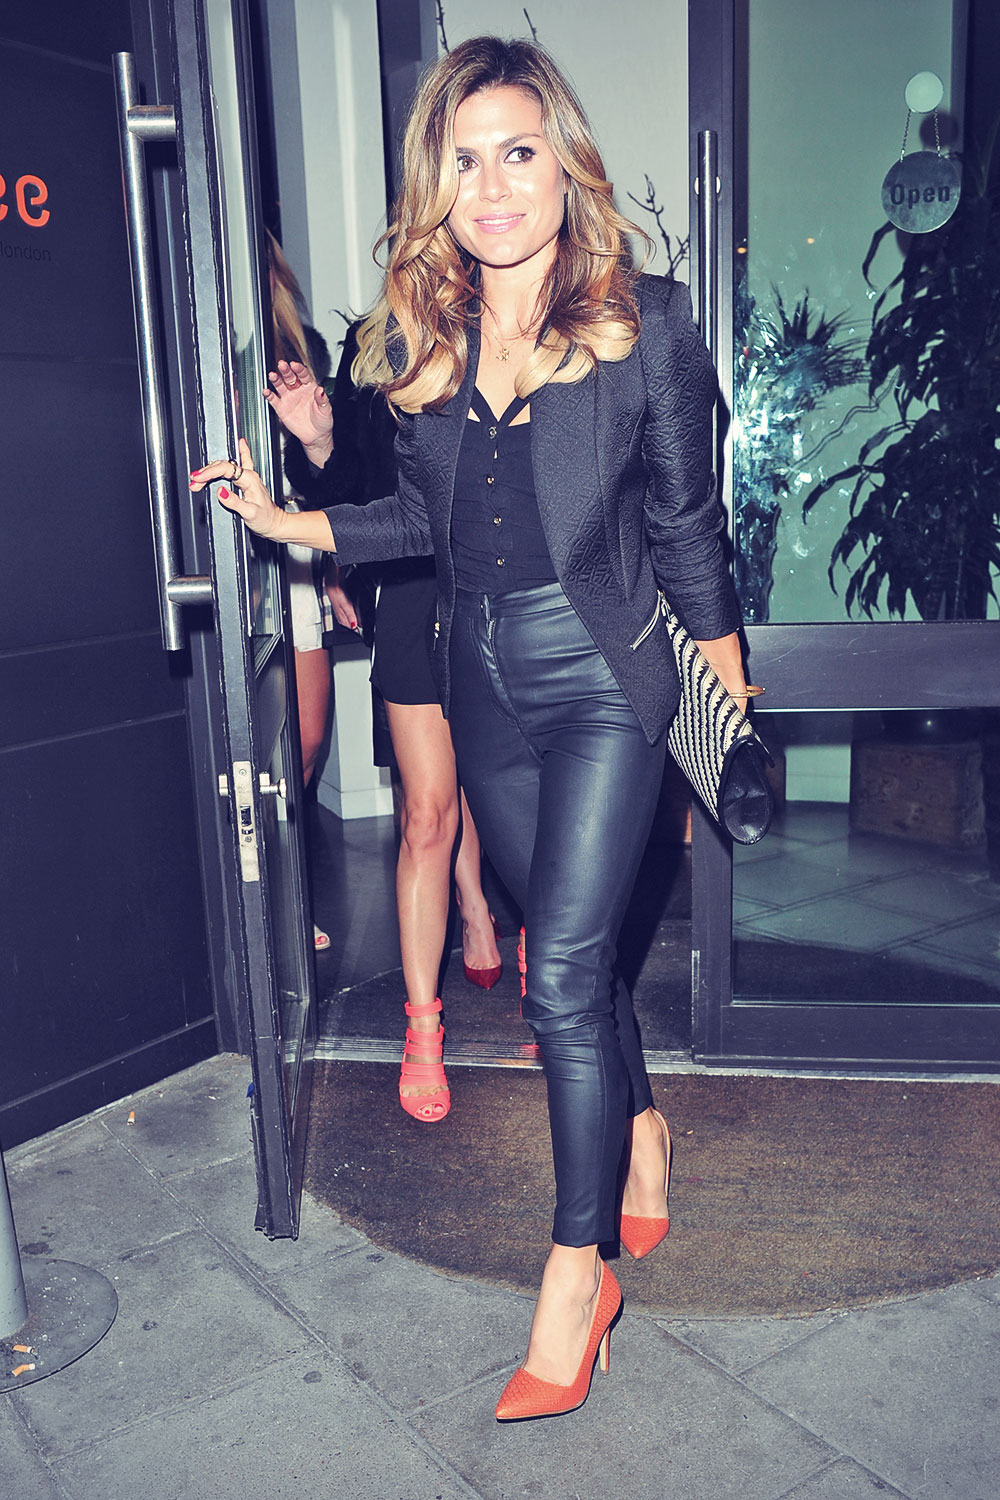 UK celebs night out in London